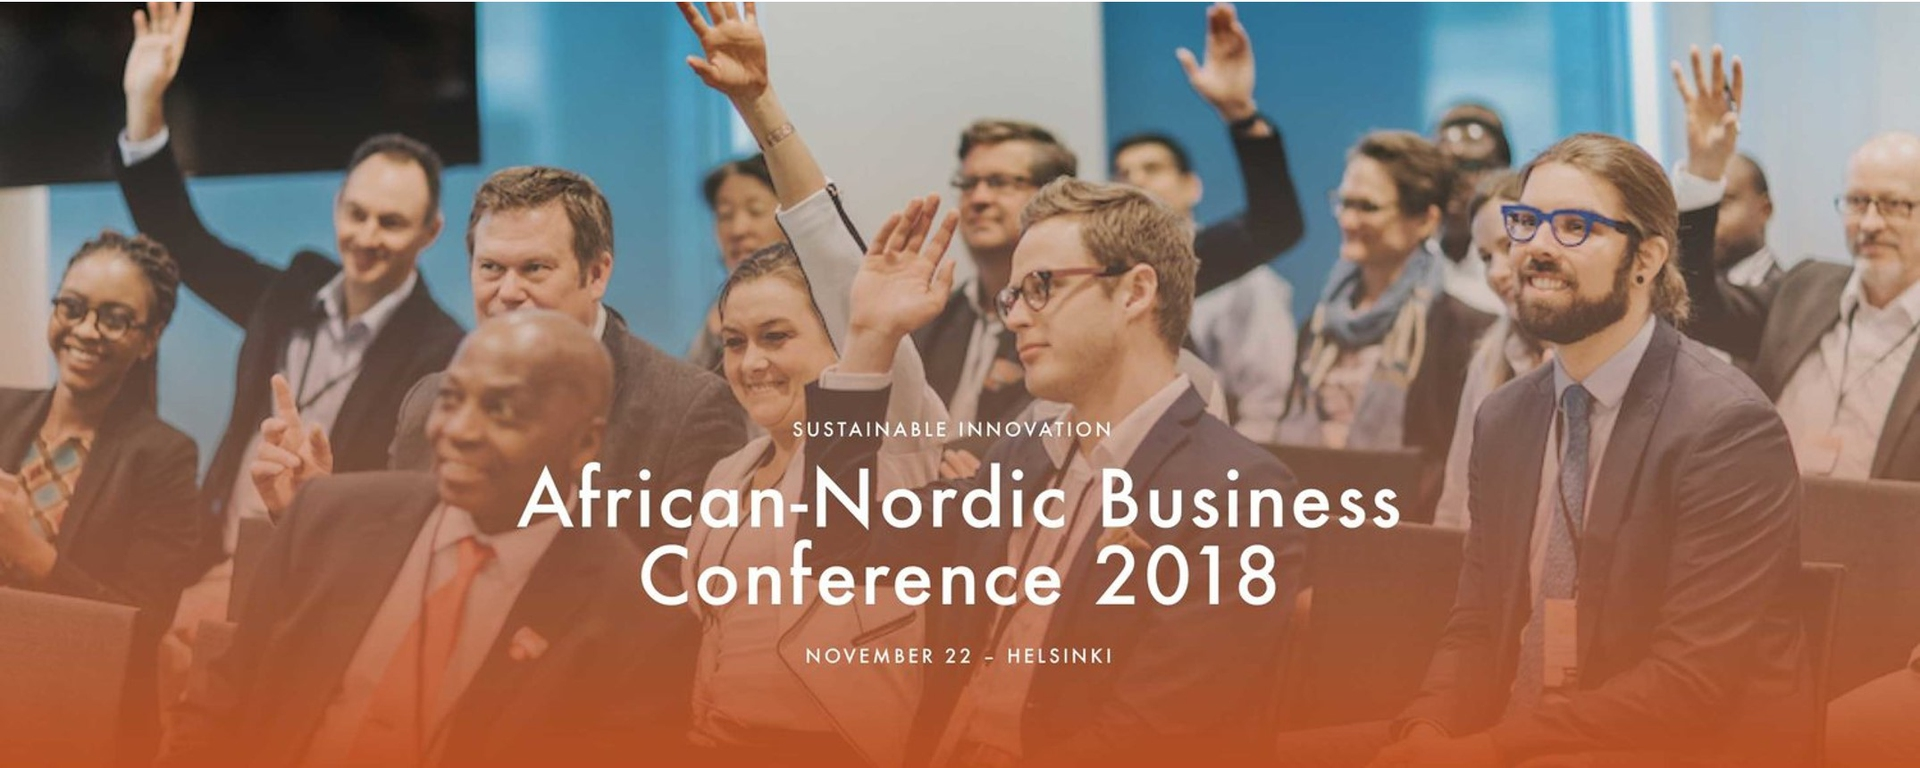 Springboard - African-Nordic Business Conference 2018 Movemeback African event cover image